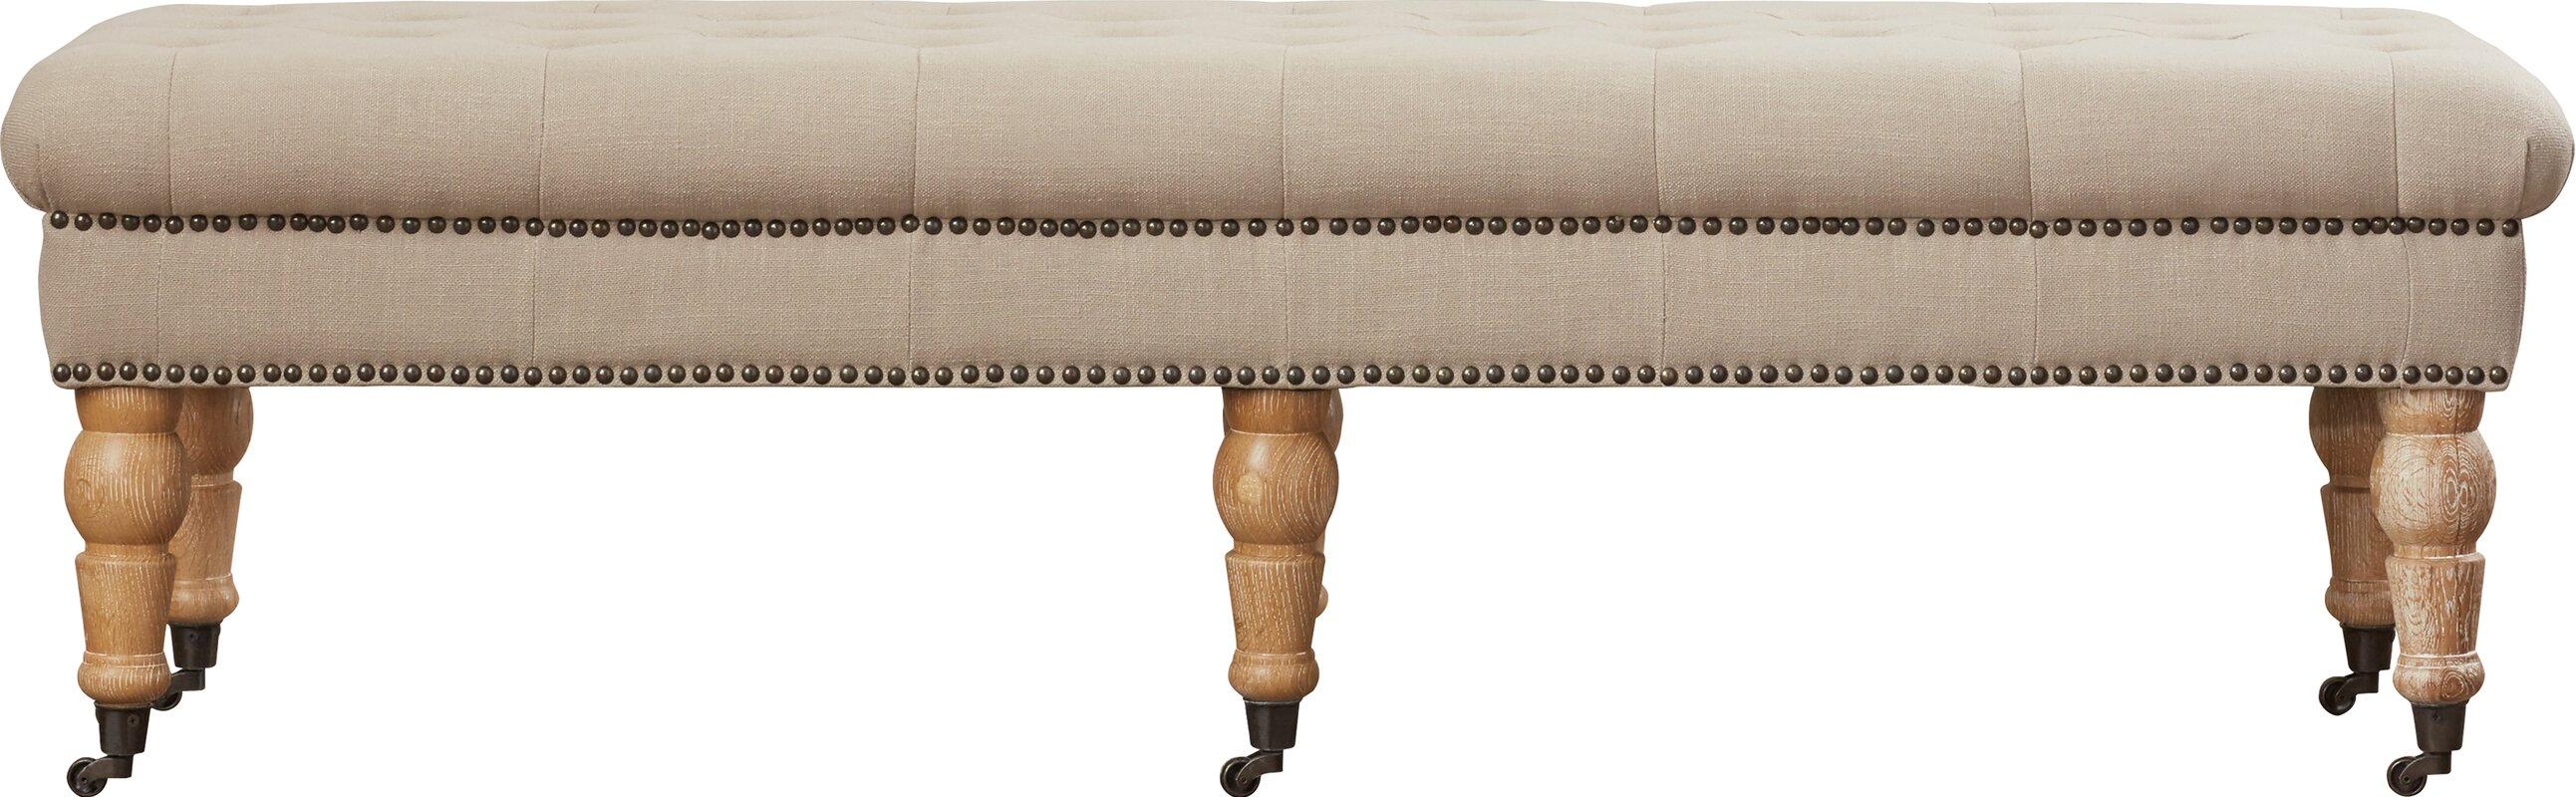 Beverly Upholstered Bench & Reviews